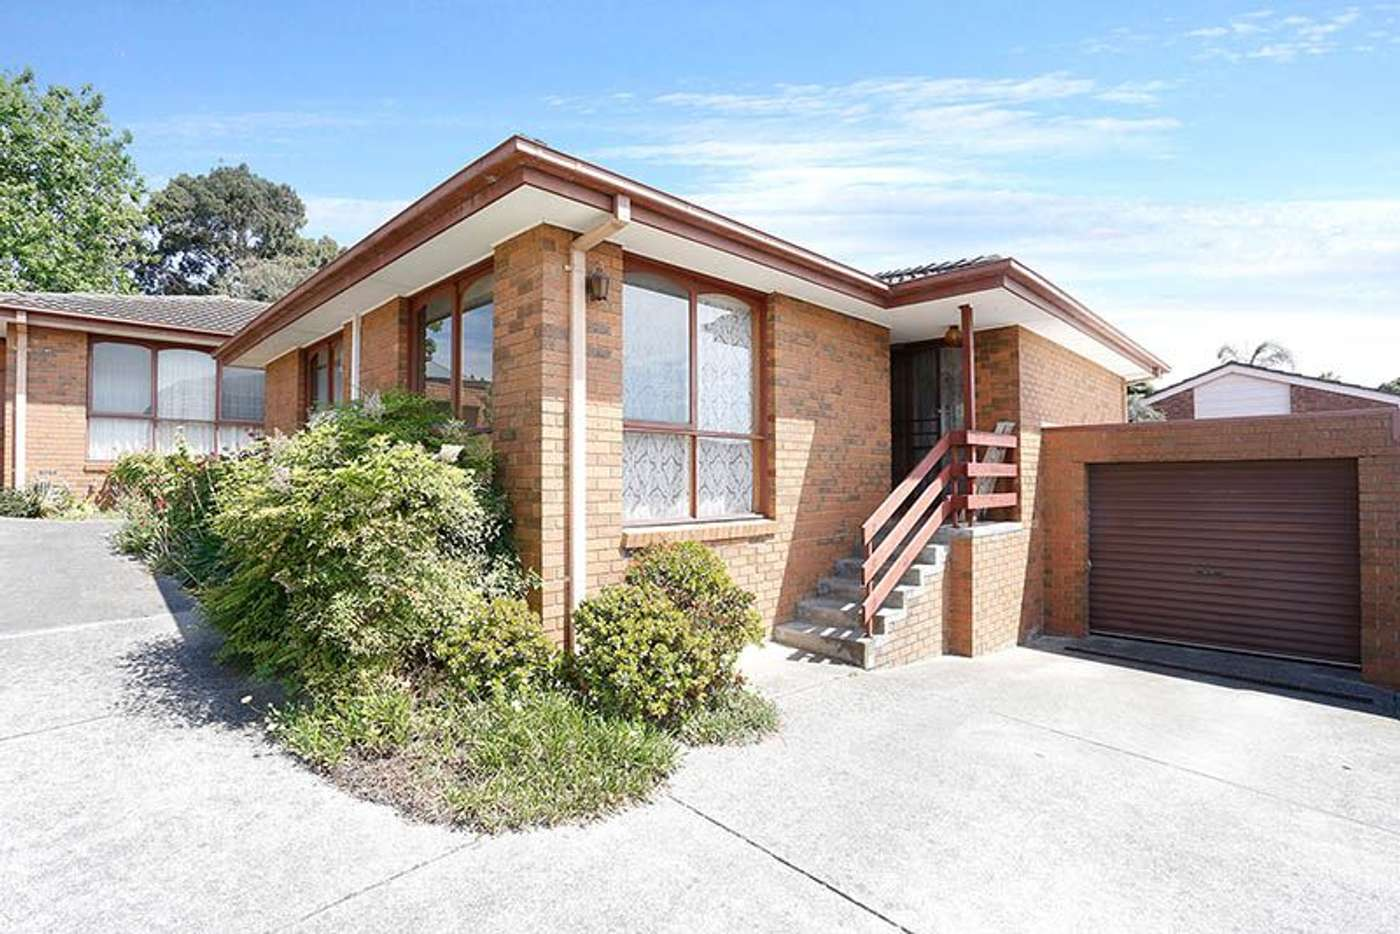 Main view of Homely unit listing, 2/15 Doynton Parade, Mount Waverley VIC 3149